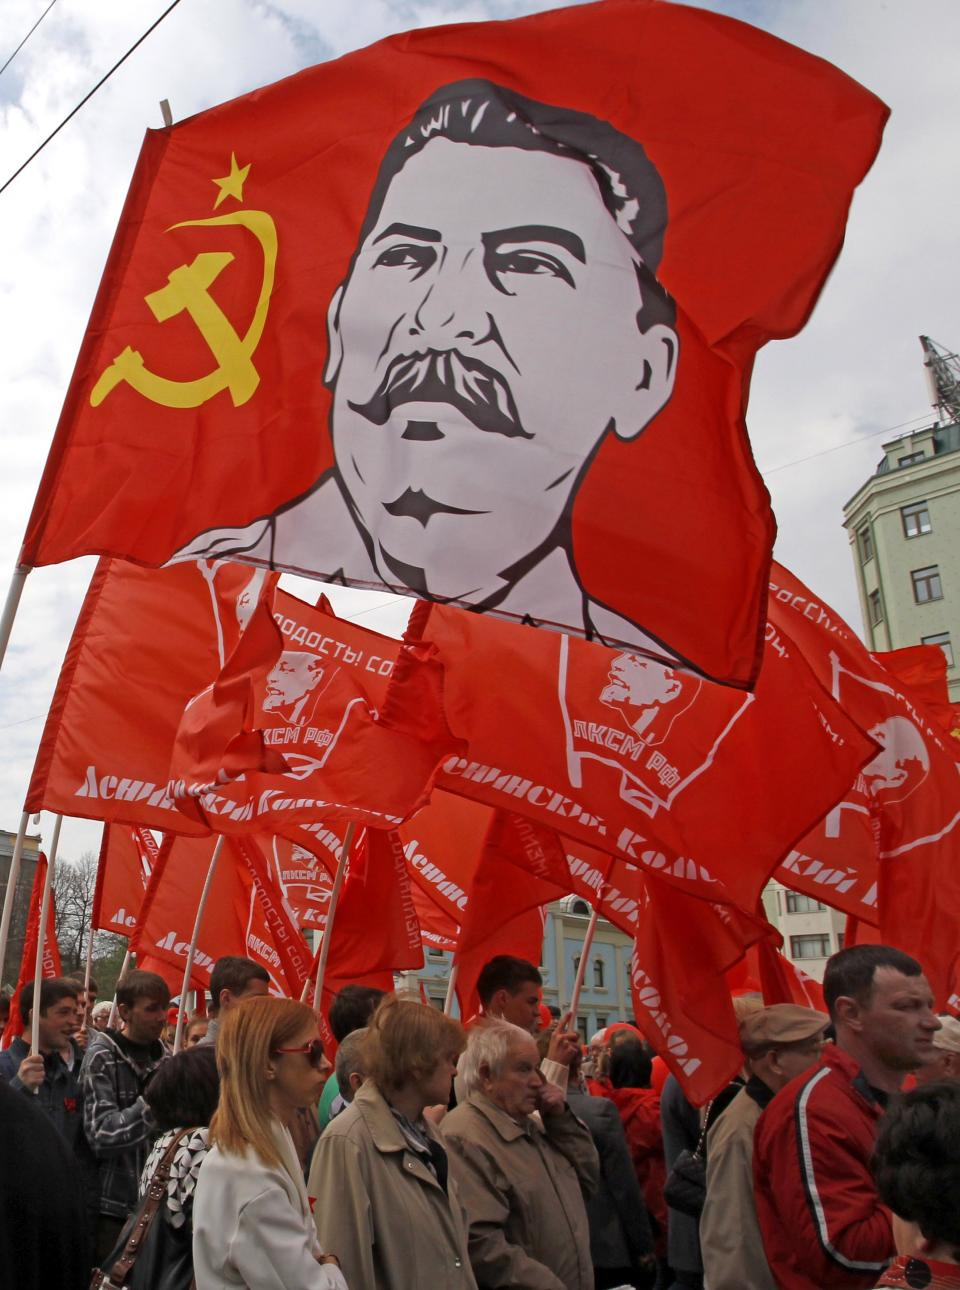 Communist Party supporters march with their flags during a rally to mark May Day in Moscow, Russia, Tuesday, May 1, 2012. Above is a flag with a a portrait of Soviet dictator Josef Stalin . (AP Photo/Mikhail Metzel)